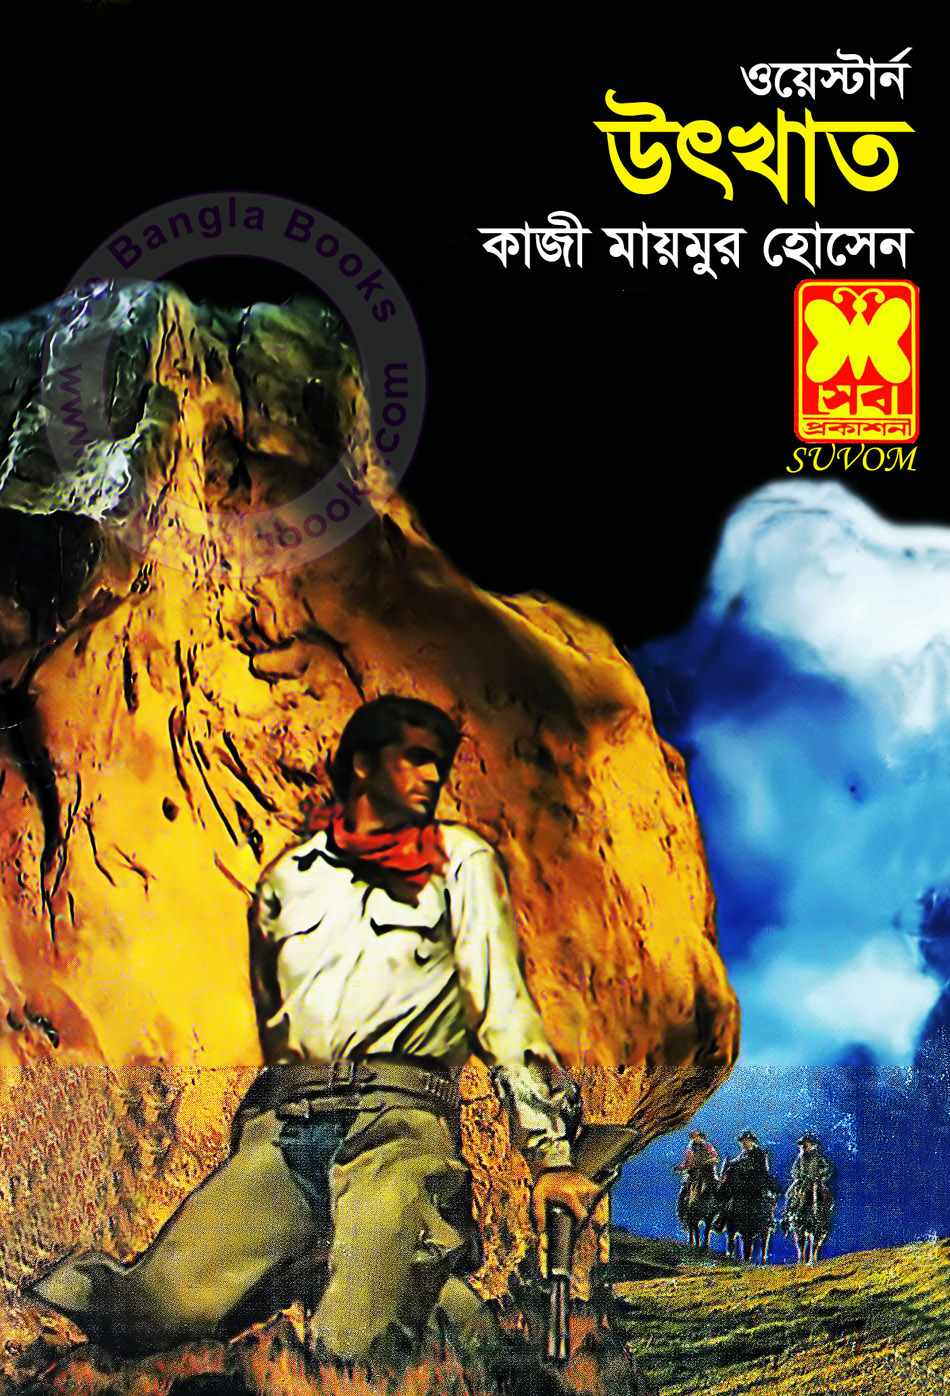 Utkhat by Qazi Maimur Hossain (Western Series) ~ Free Download